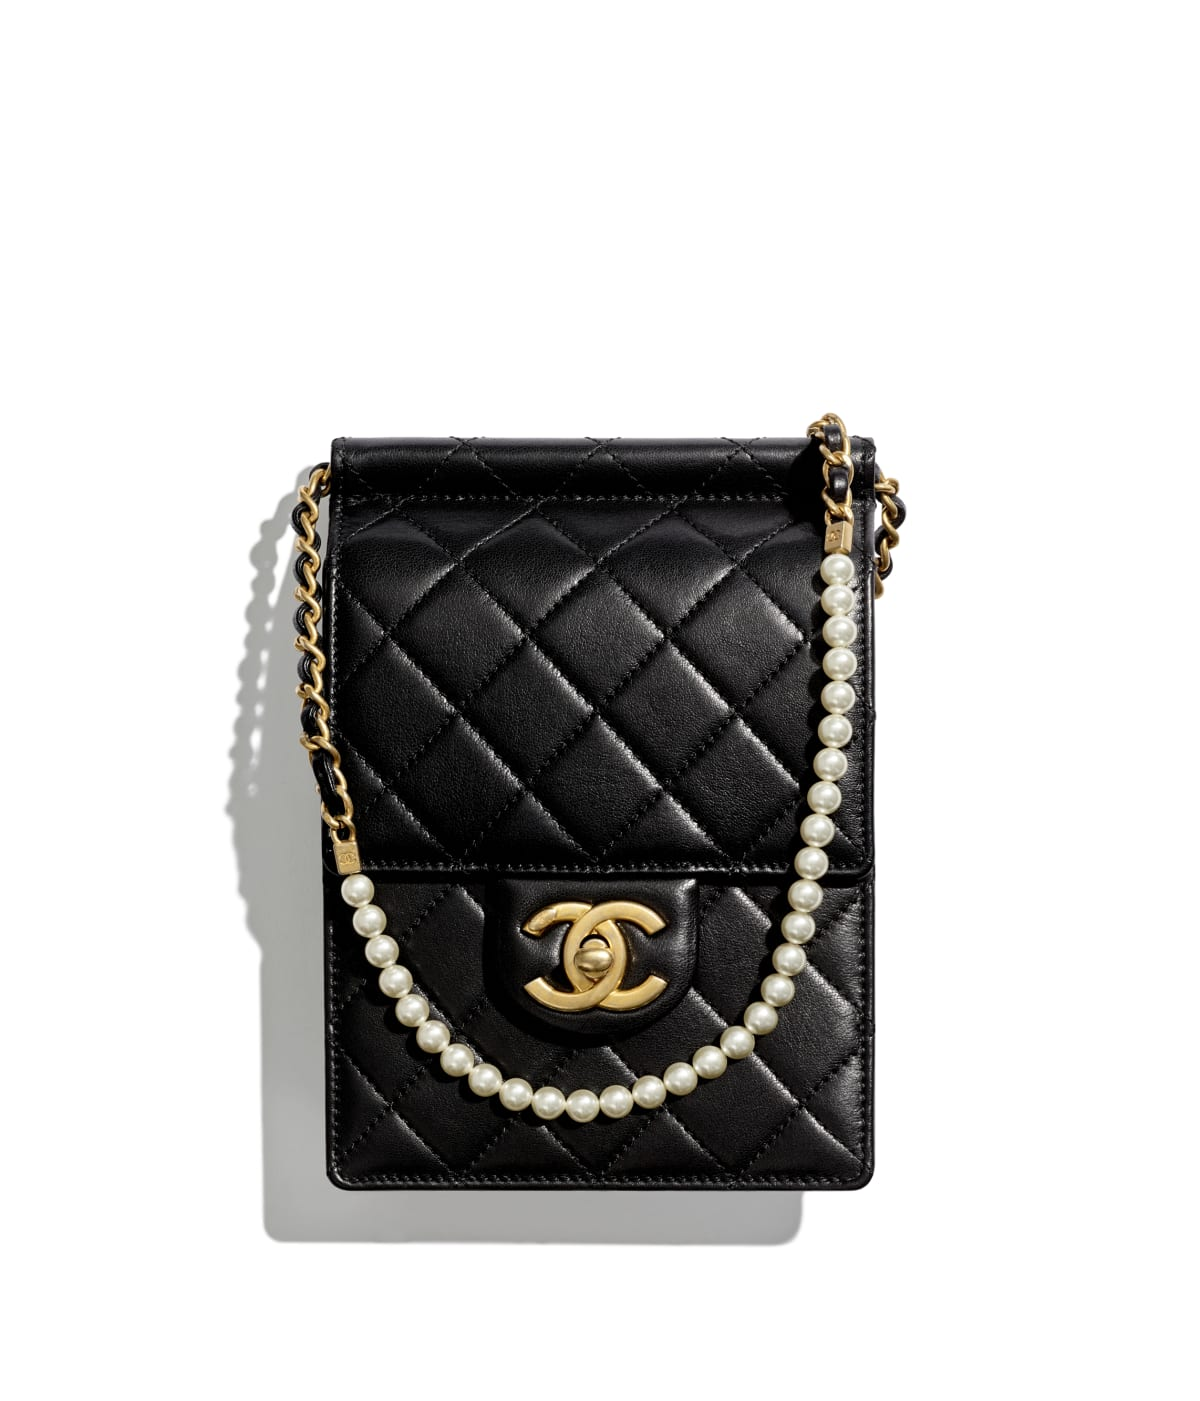 831d1d1b8e Clutches with Chain - Small Leather Goods - CHANEL